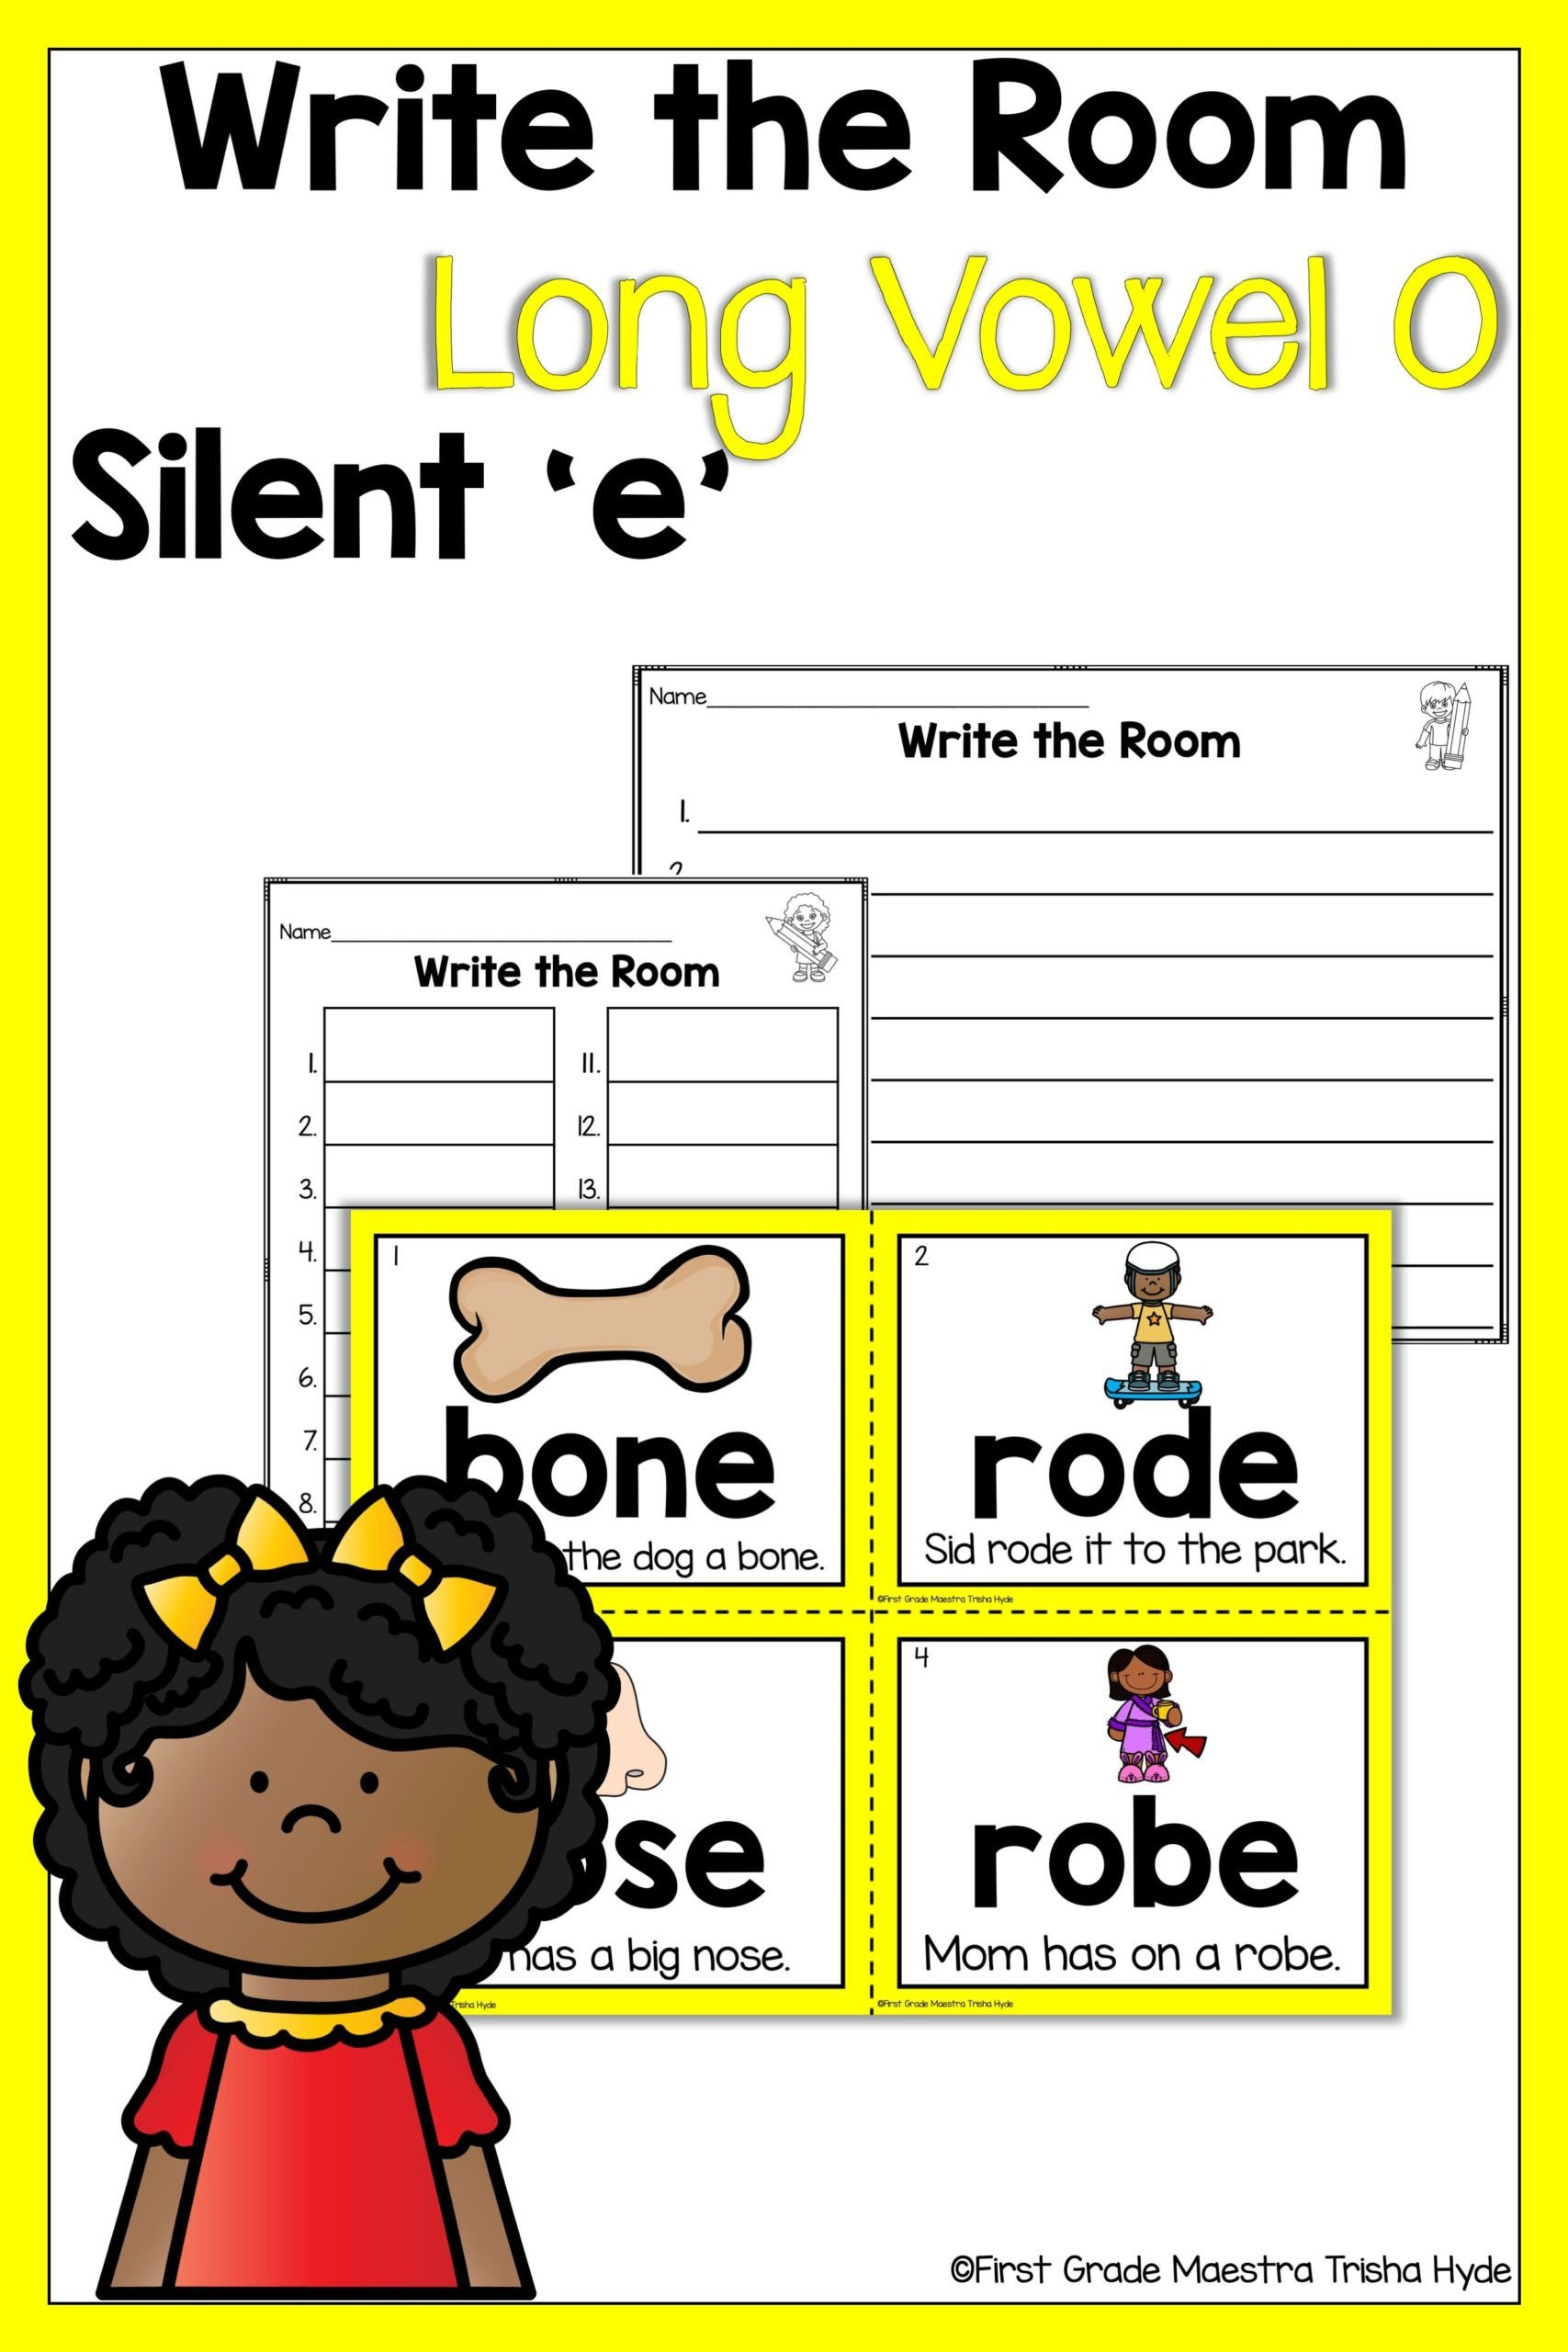 Magic E Worksheets Ks1 Write the Room Vowel Silent with Phonics Worksheets